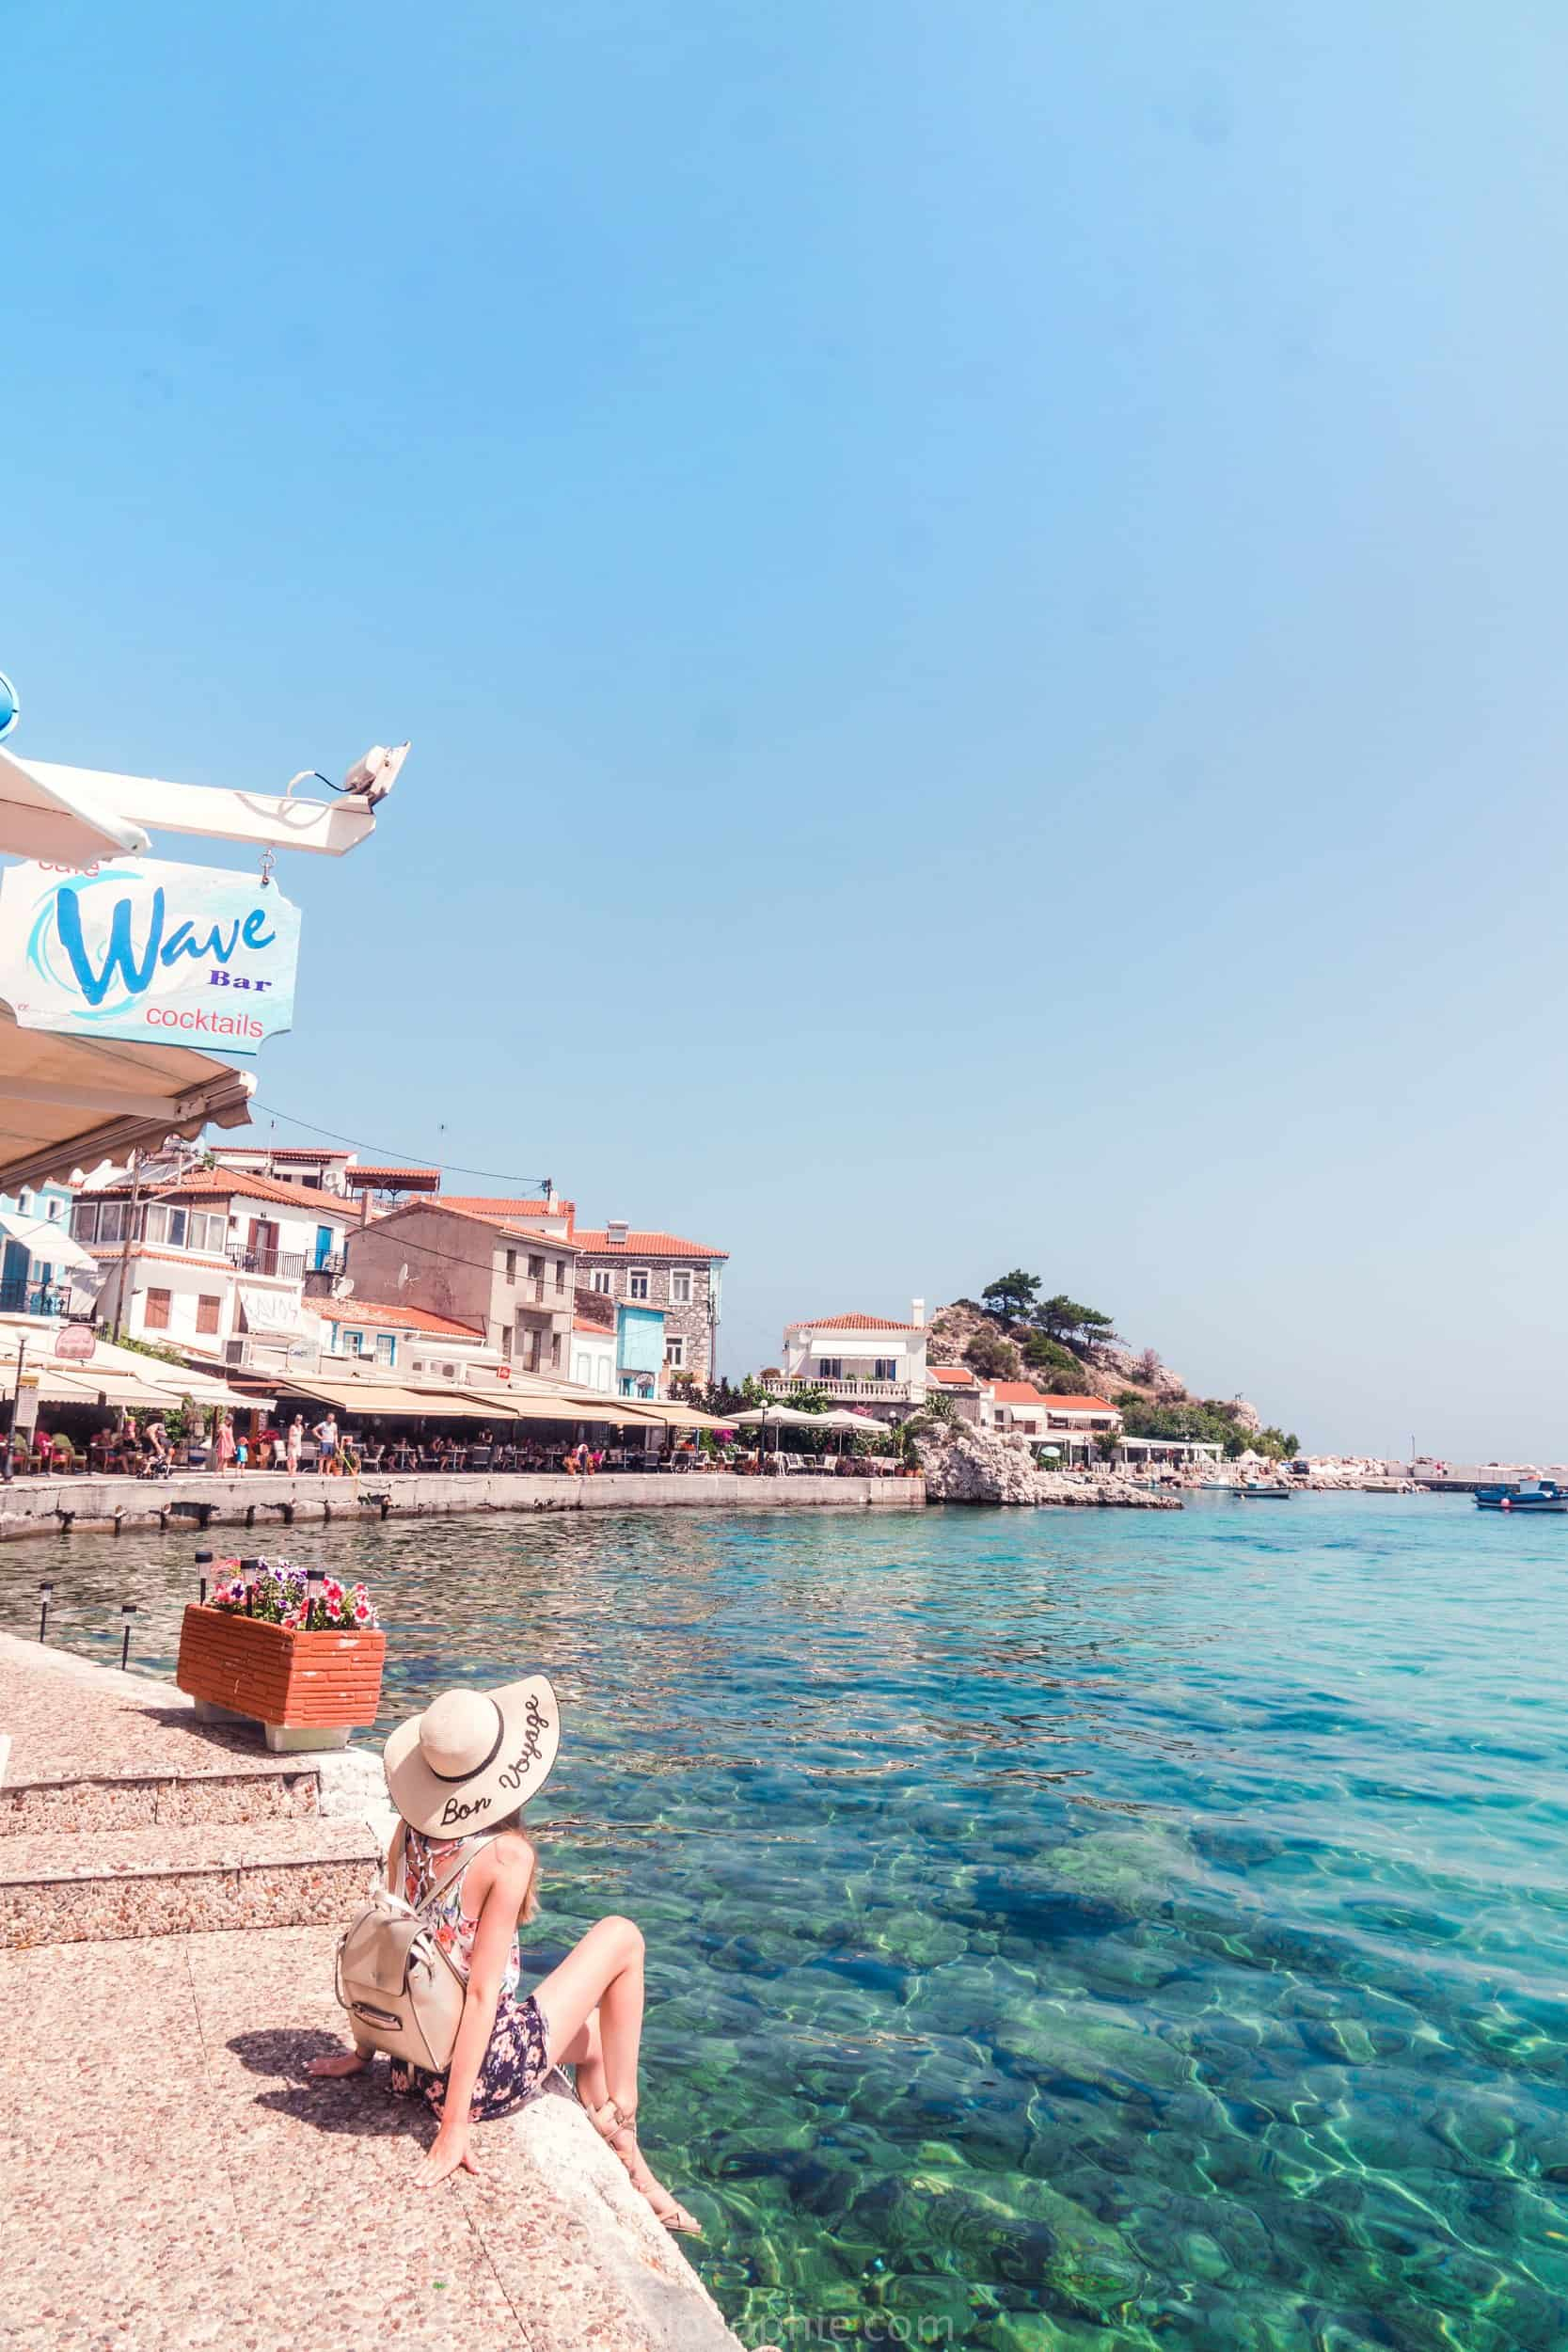 Best Summer Destinations in Europe You'll Want to Book a Flight to ASAP